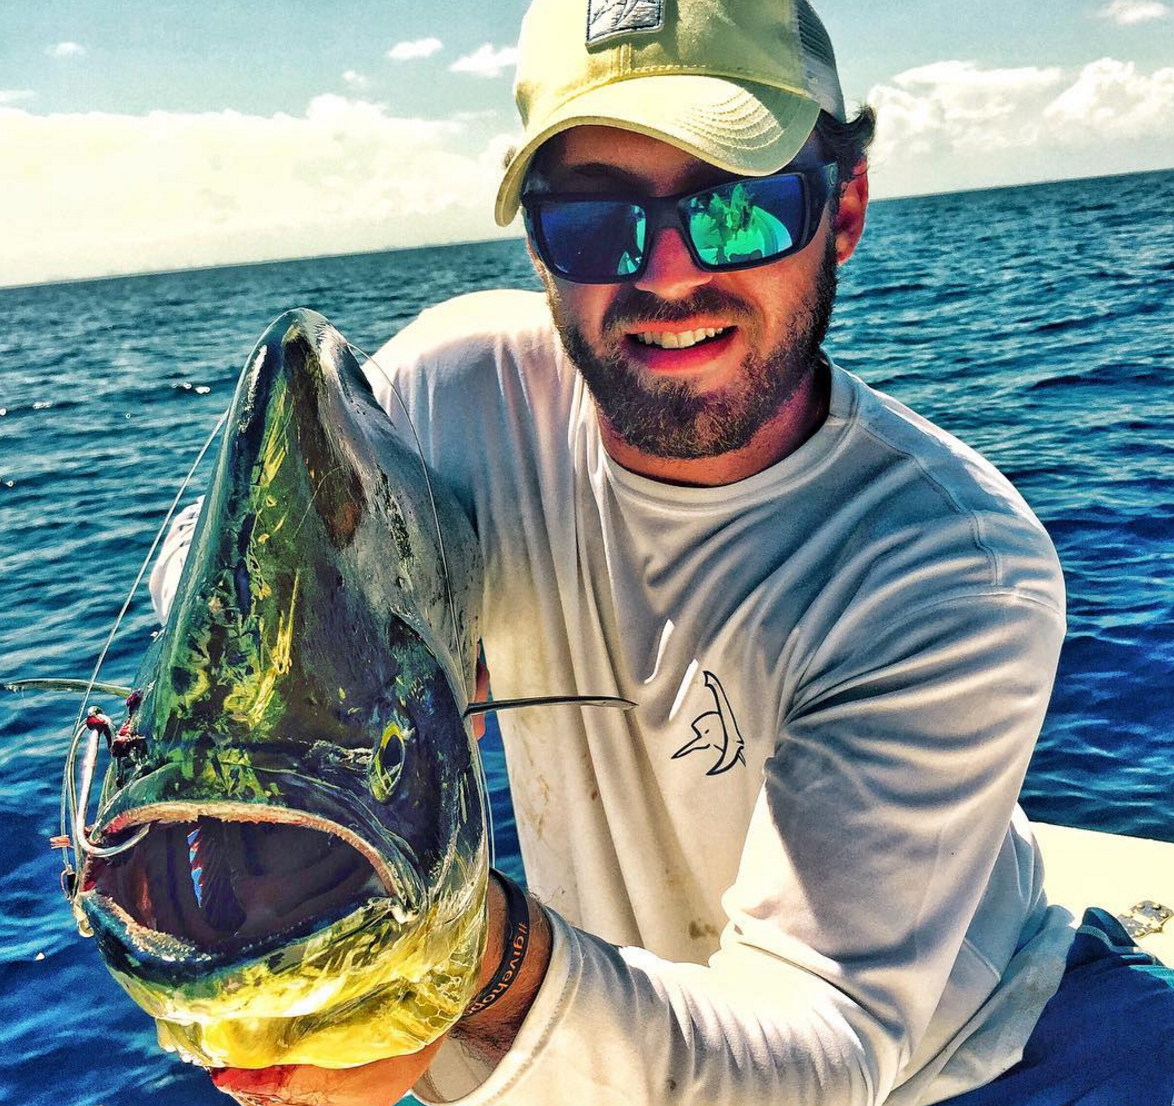 Boynton beach fishing charter inshore and offshore for Boynton beach fishing charters